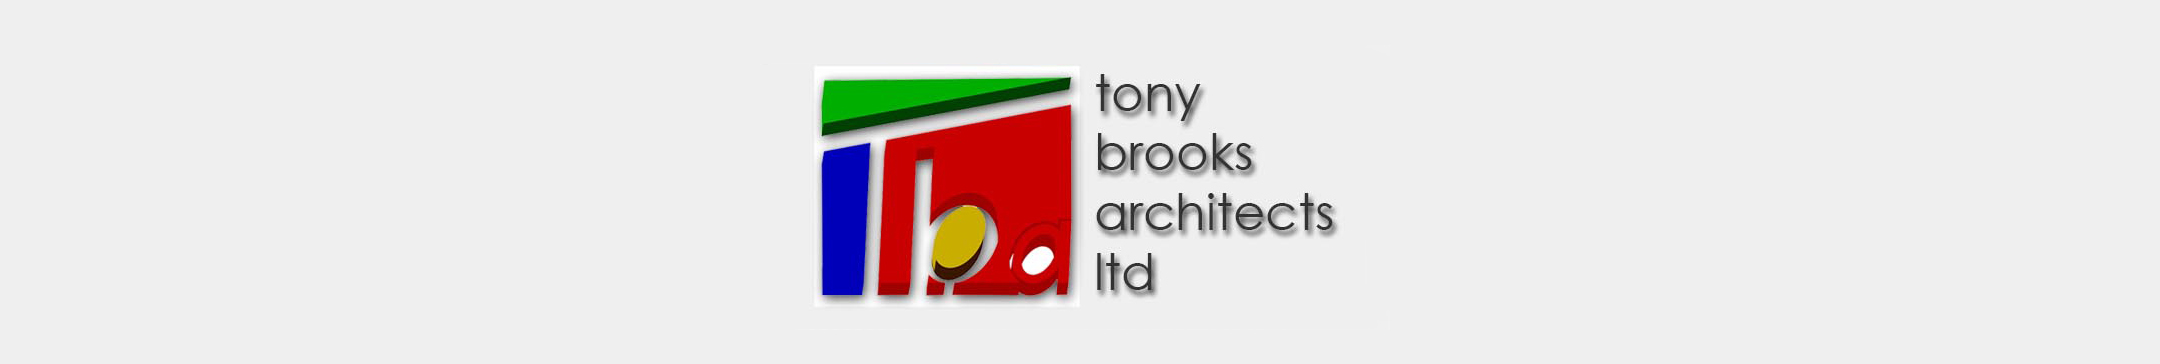 Tony Brooks Architects